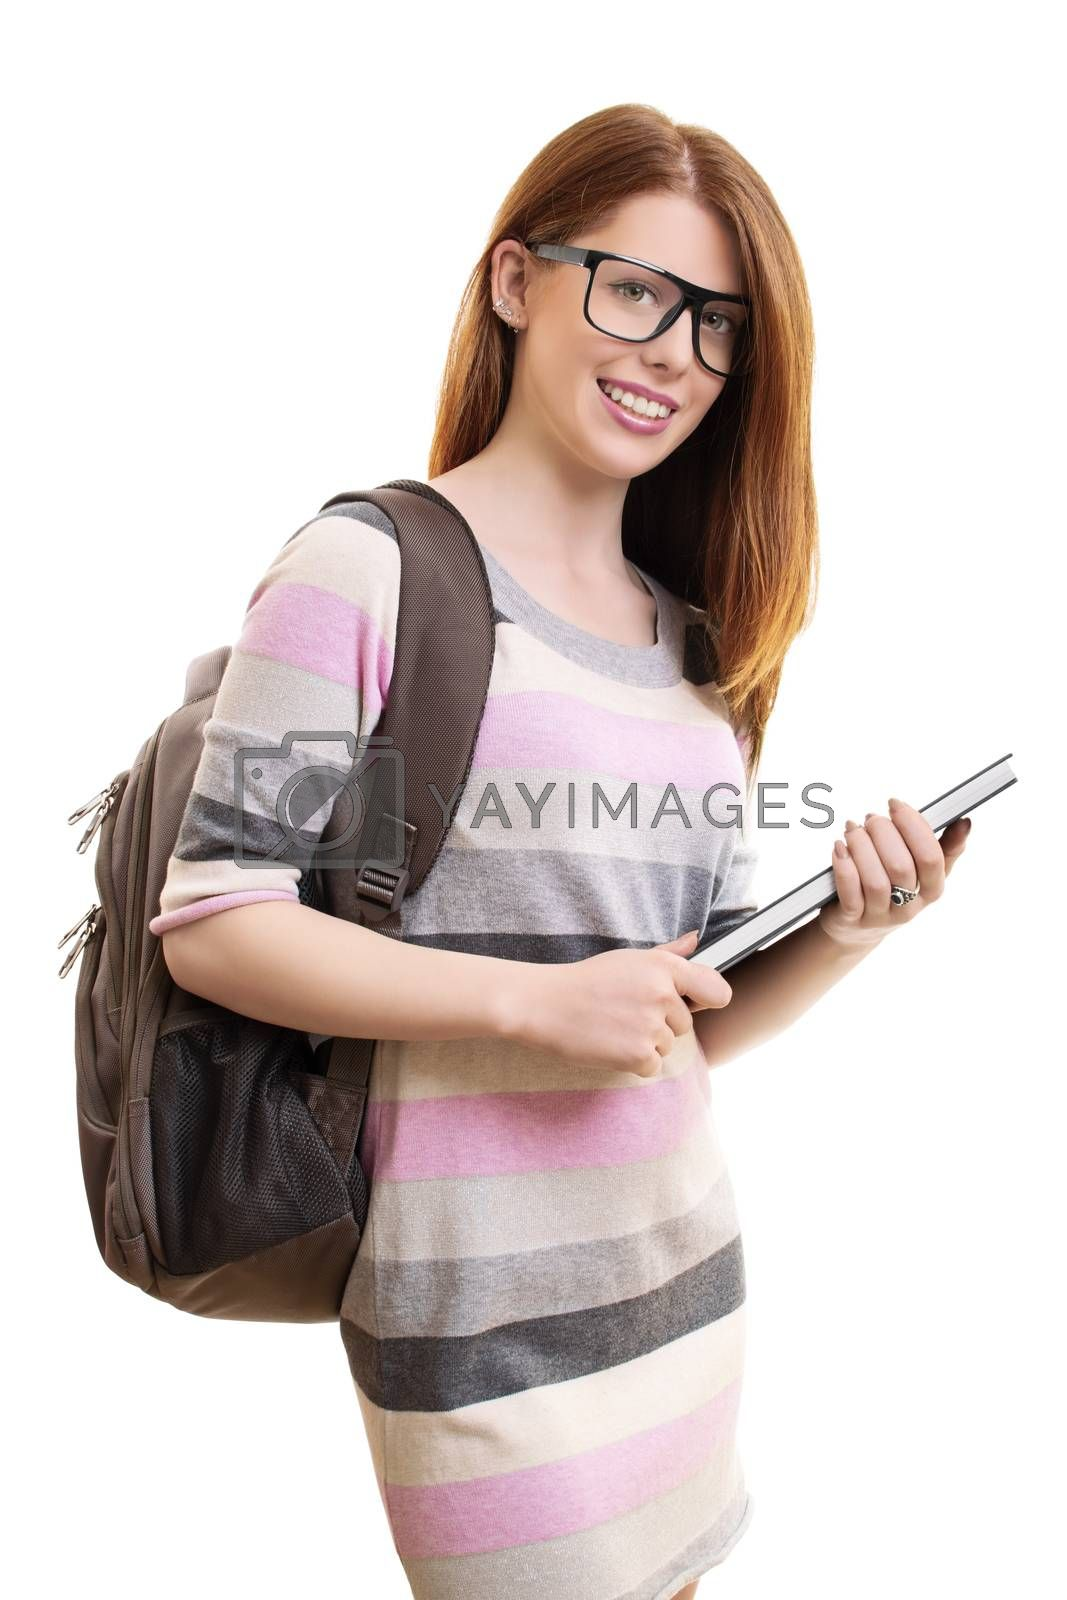 A portrait of a beautiful young female student with glasses and a backpack holding a book, isolated on white background.